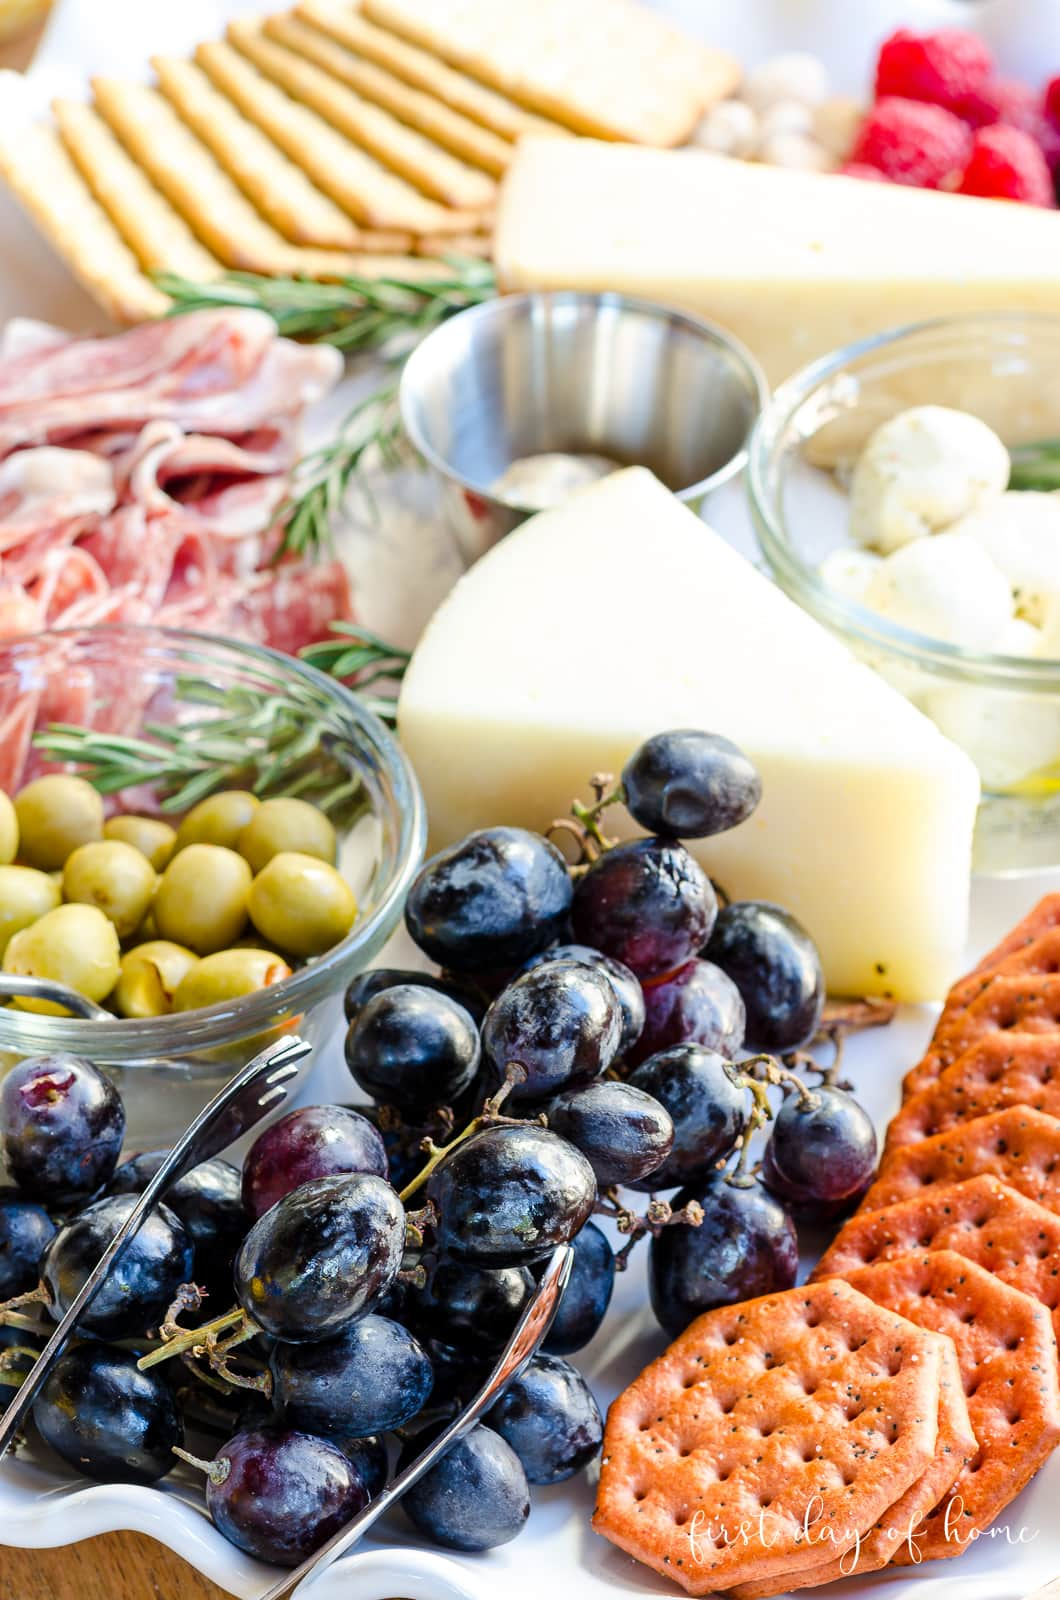 Charcuterie tray with grapes, crackers, Manchego cheese, olives and deli meats